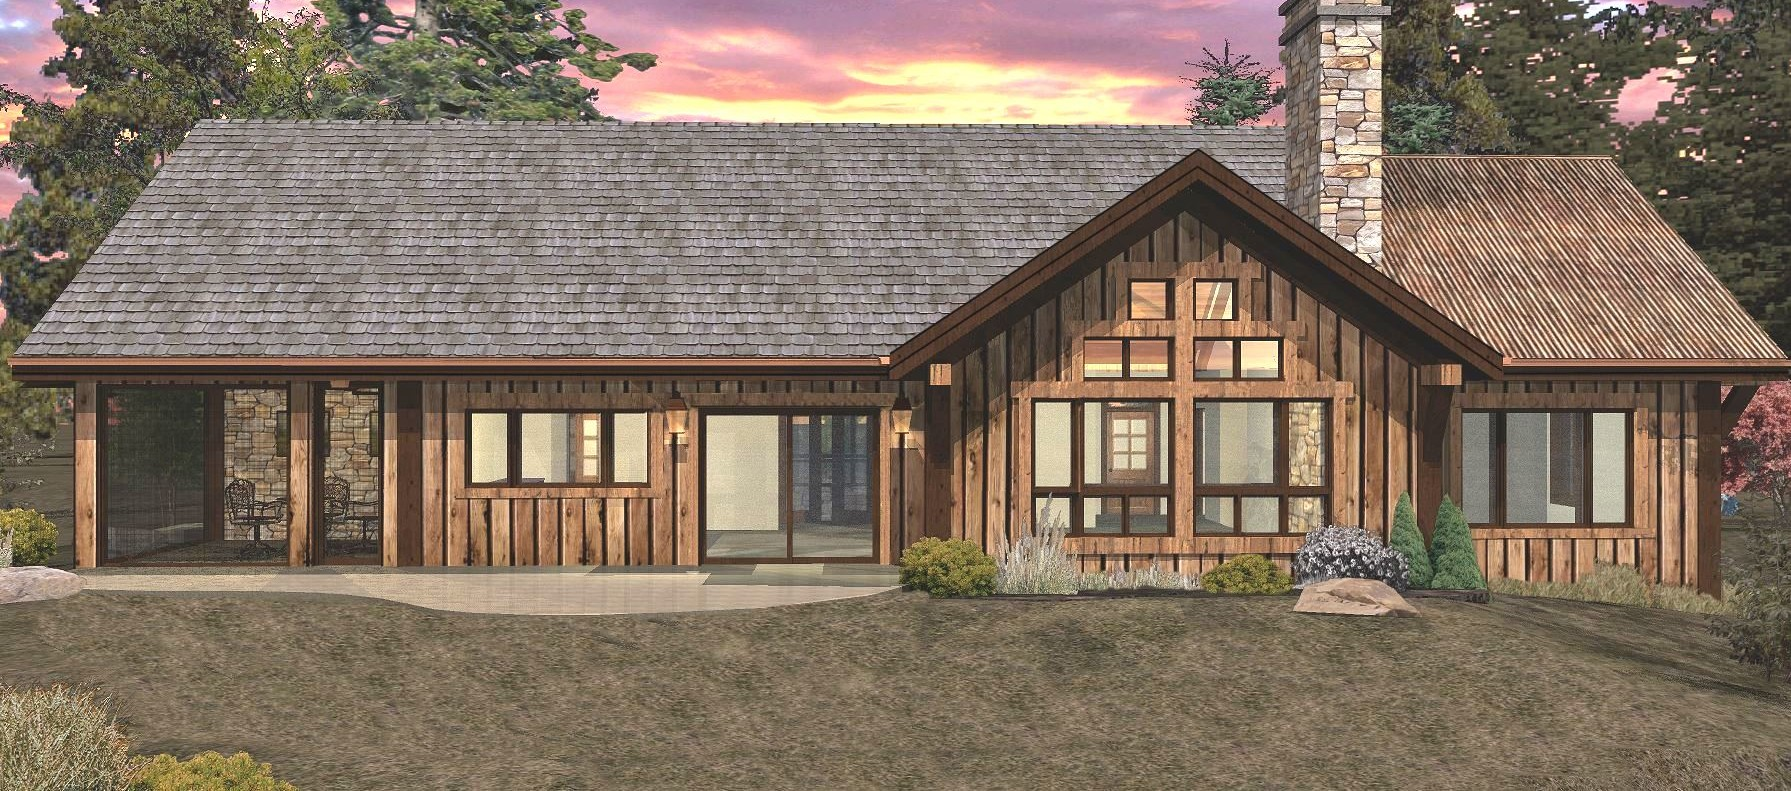 Pinecone - Rear Rendering by Wisconsin Log Homes 3